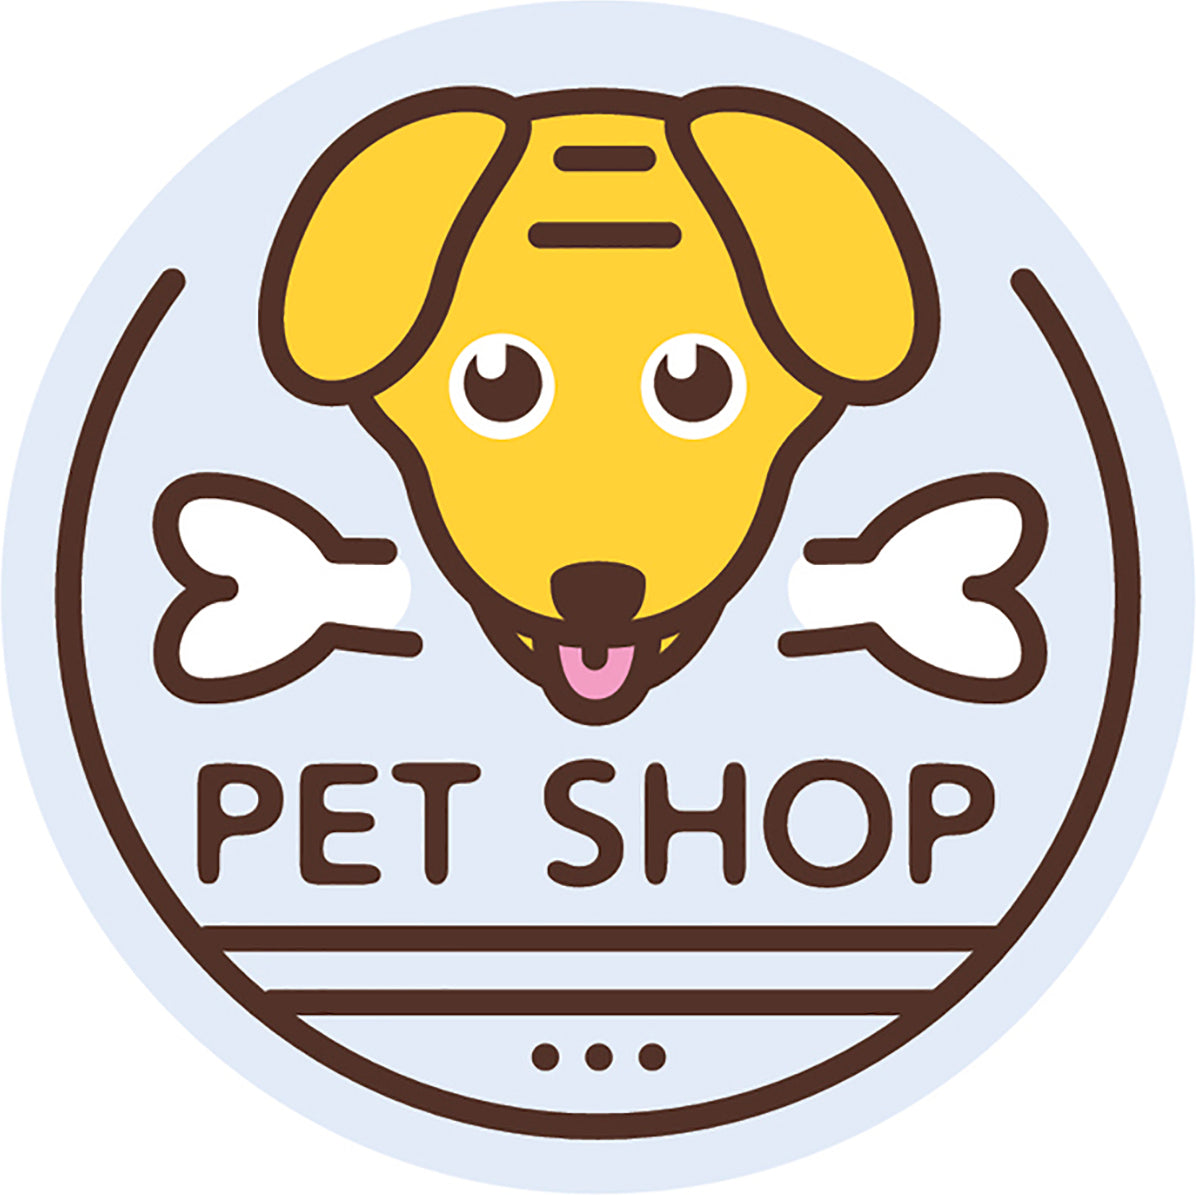 Cute Veterinary Clinic Pet Shop Cartoon Logo Icon #4 Vinyl Decal Sticker